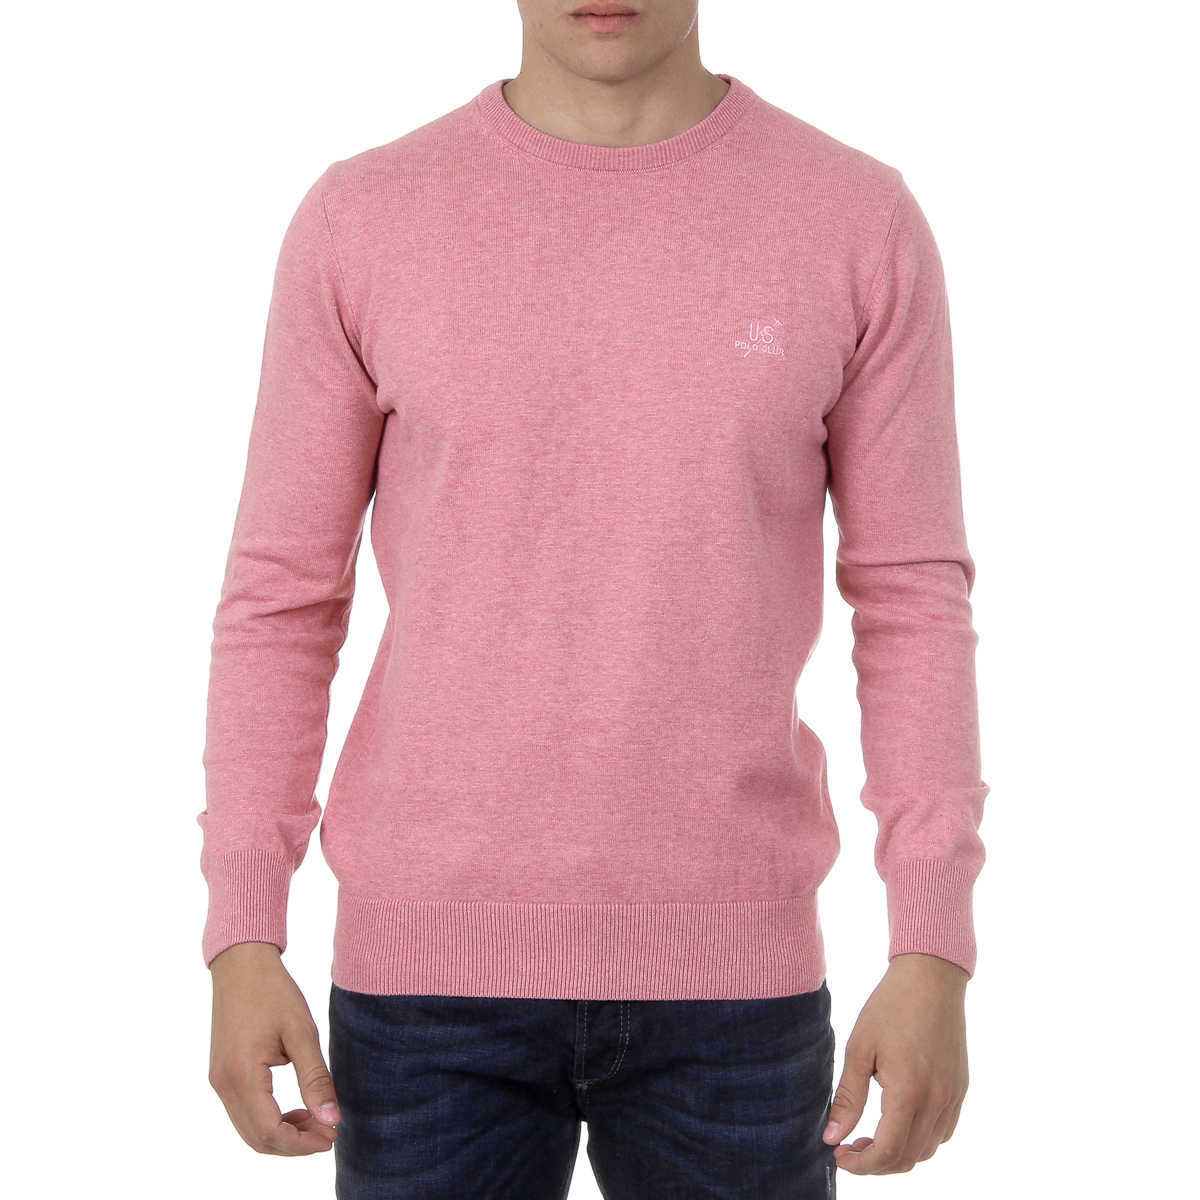 Primary image for Ufford & Suffolk Polo Club Mens Sweater Long Sleeves Round Neck PULLRUS100 PINK